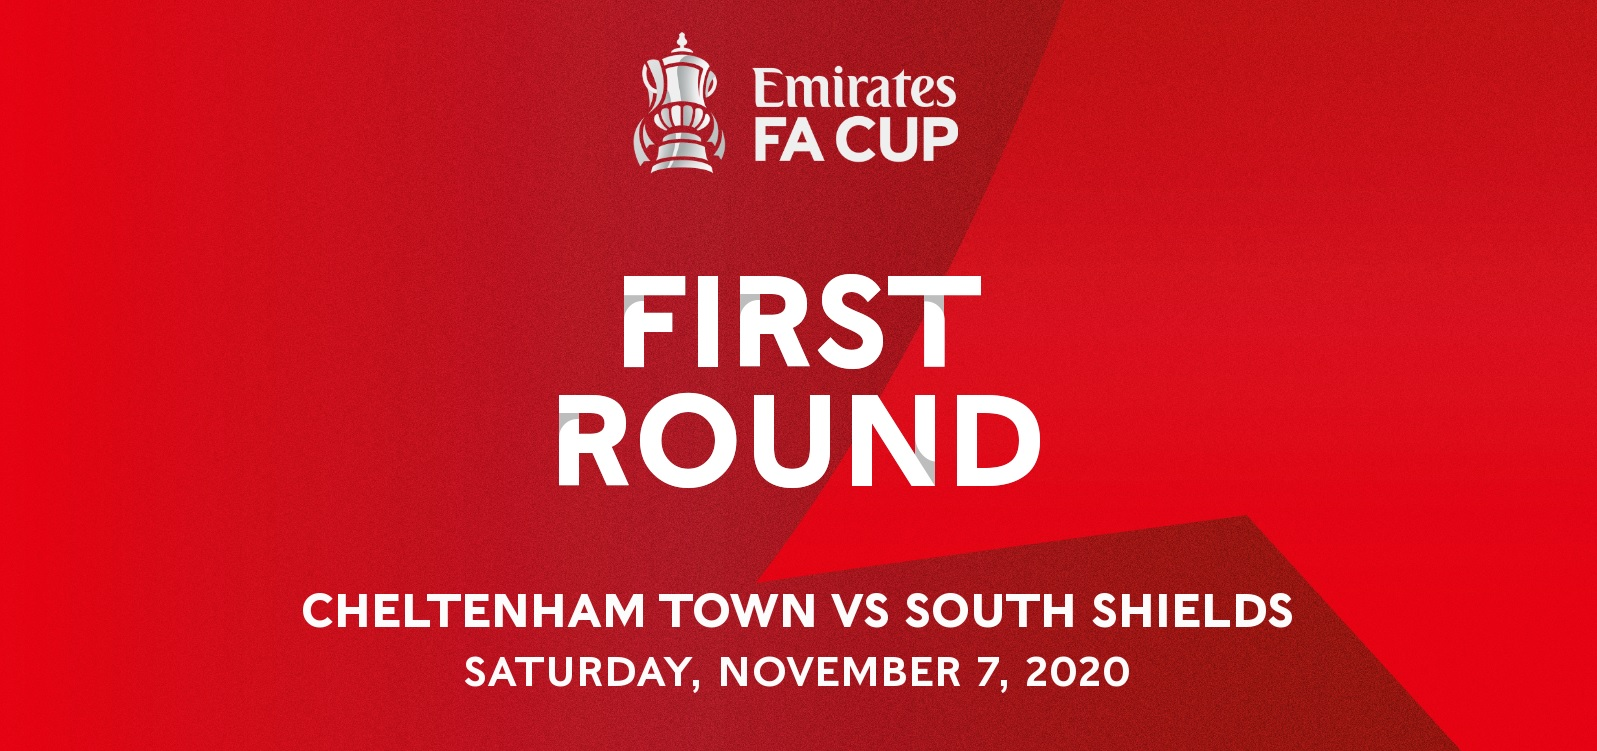 Watch historic Emirates FA Cup tie from home